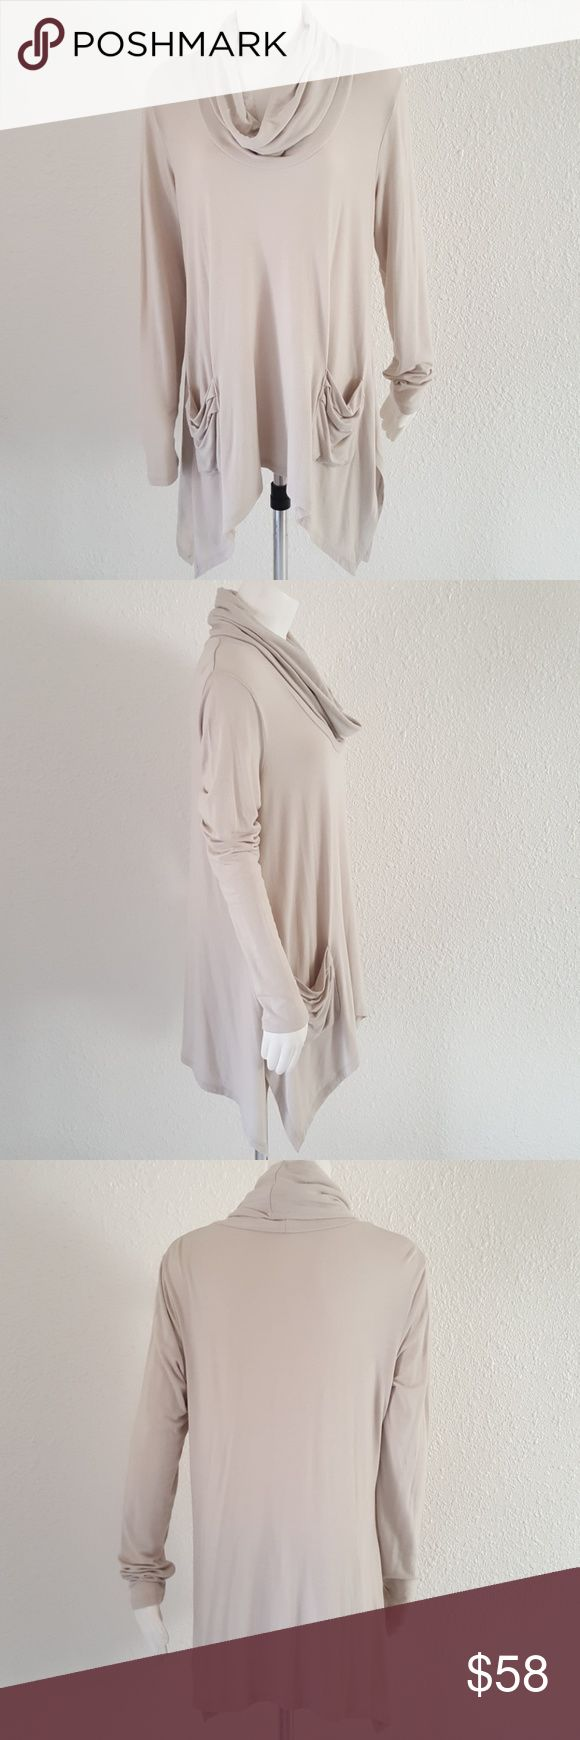 """Andrea Jovine Workshop Asymmetrical Tunic L Gorgeous long tunic from Workshop line by Andrea Jovine. Very light beige stone color. Cowl neck. Long sleeves, asymmetrical hemline. Slouchy pockets on front. Super soft w perfect amount of stretch. Chest 42"""", longest length on sides 34"""", shortest length 30"""", sleeves 26"""". So fabulous perfect for Fall! Andrea Jovine Tops Tunics"""